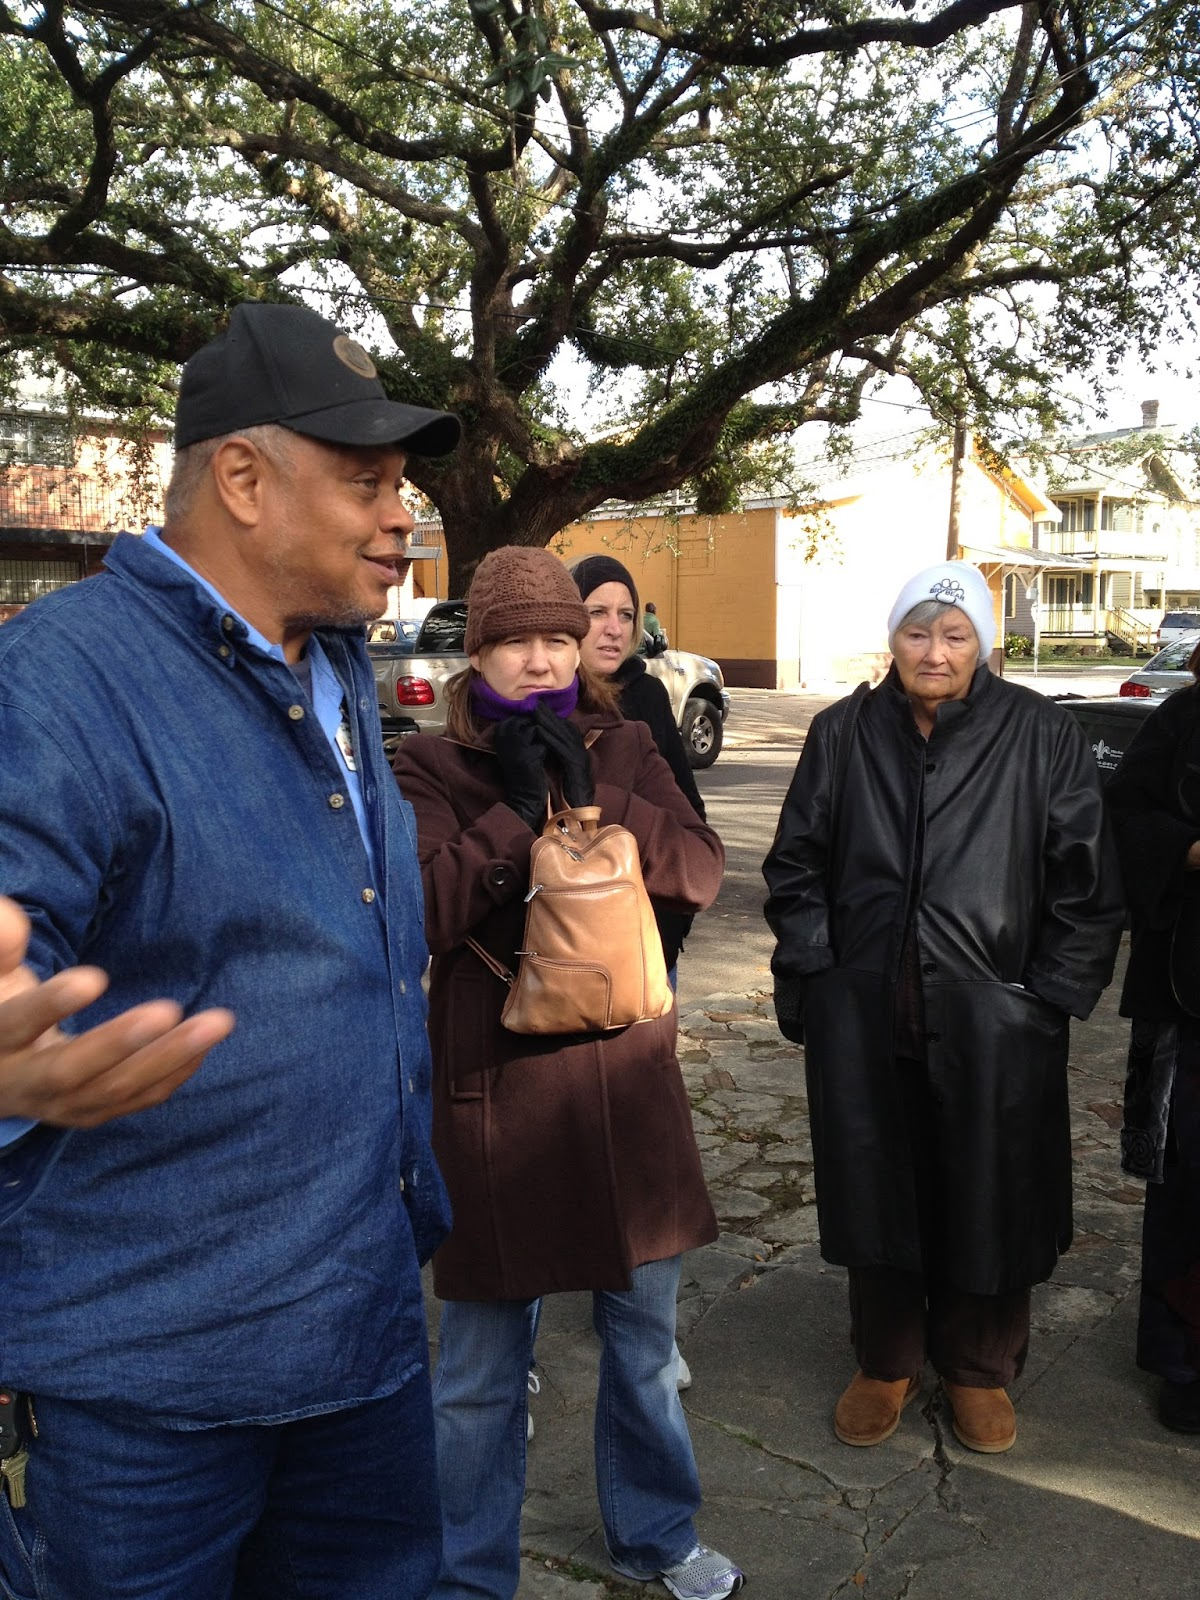 Milton Guide of Treme Walking Tour